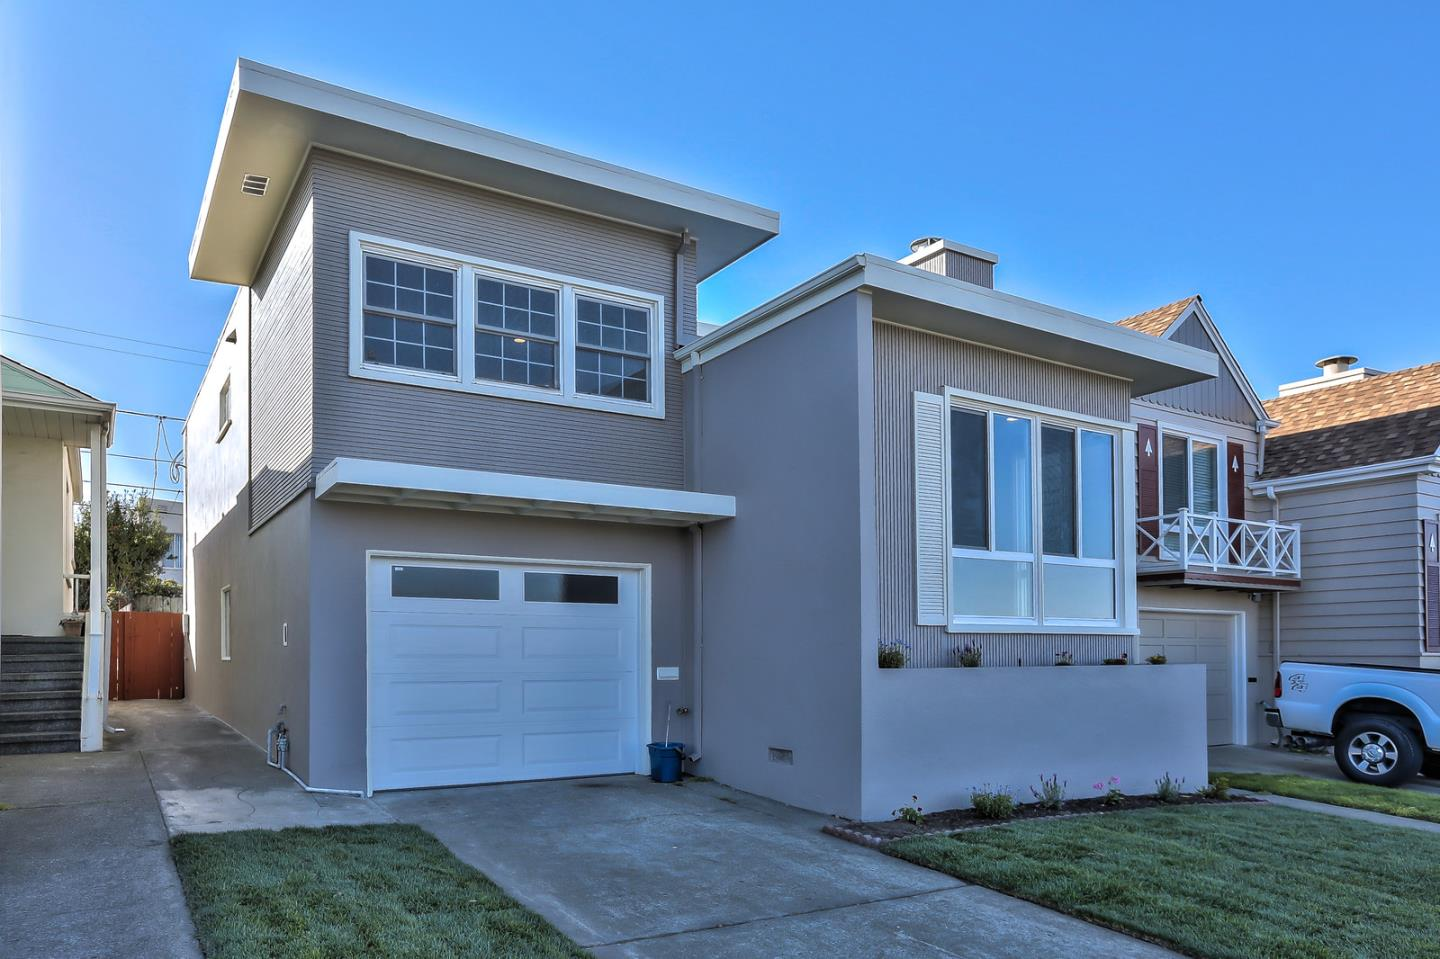 636 Southgate Ave, Daly City, CA 94015 - MLS 81692717 - Coldwell Banker